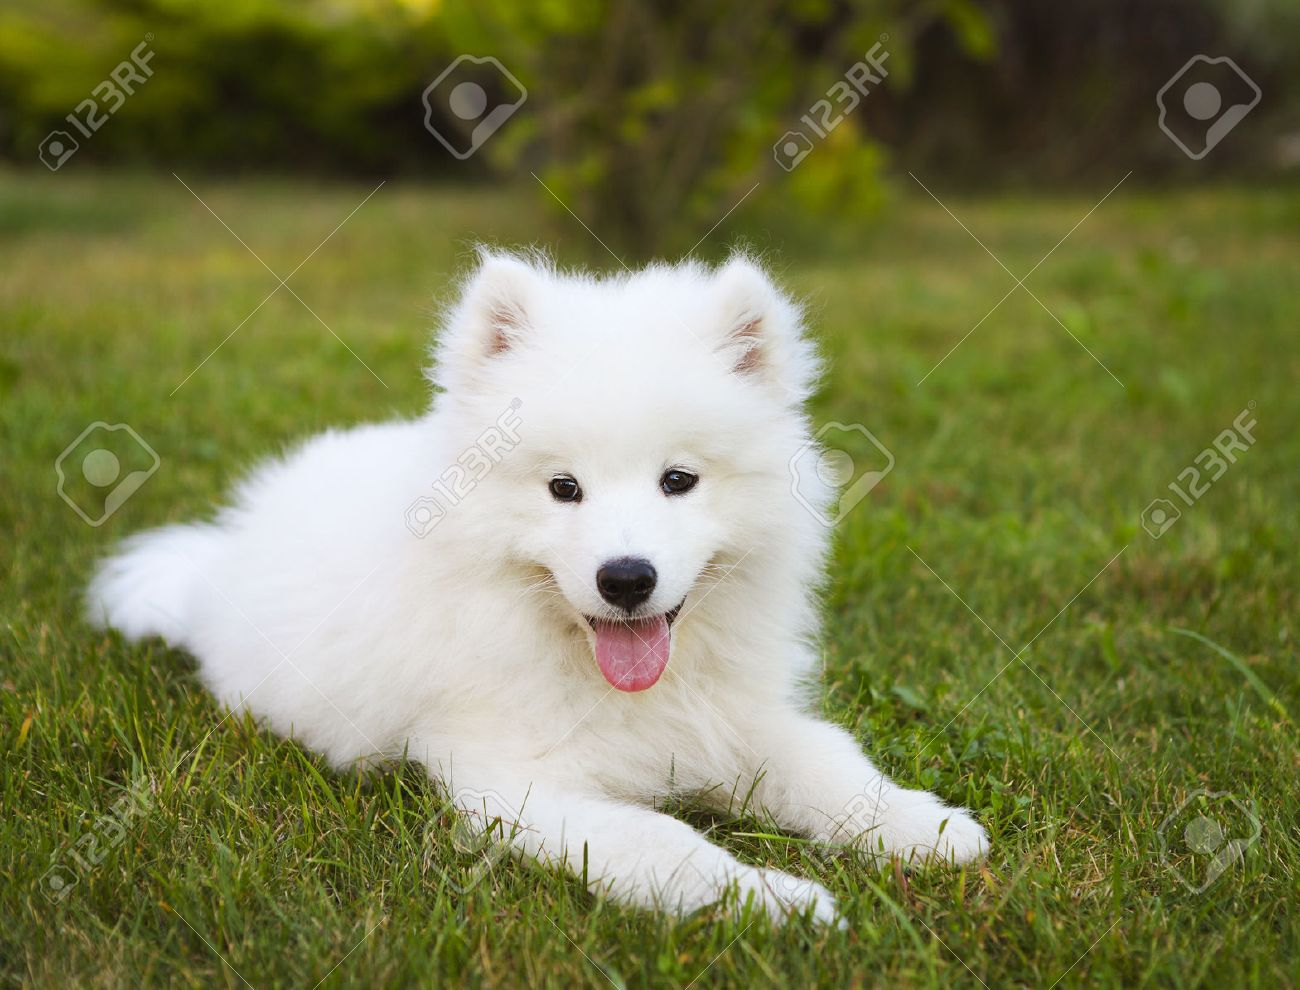 Funny Samoyed puppy in the summer garden on the green grass - 51372207